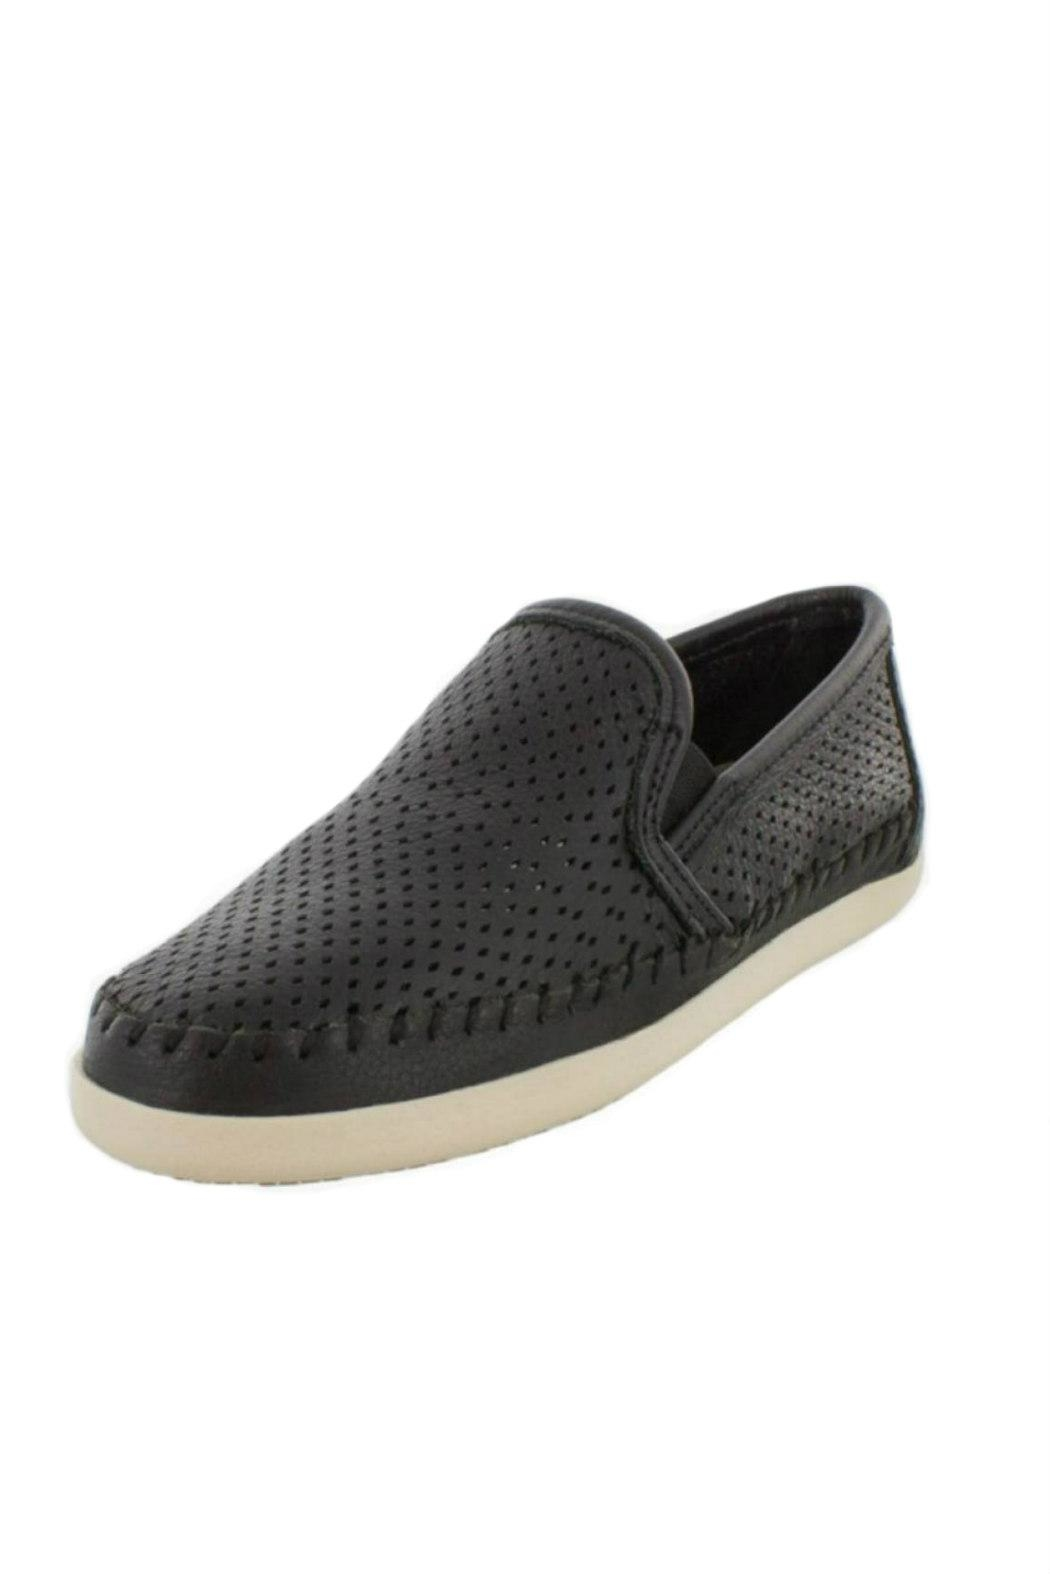 Minnetonka Perforated Leather Sneaker - Main Image